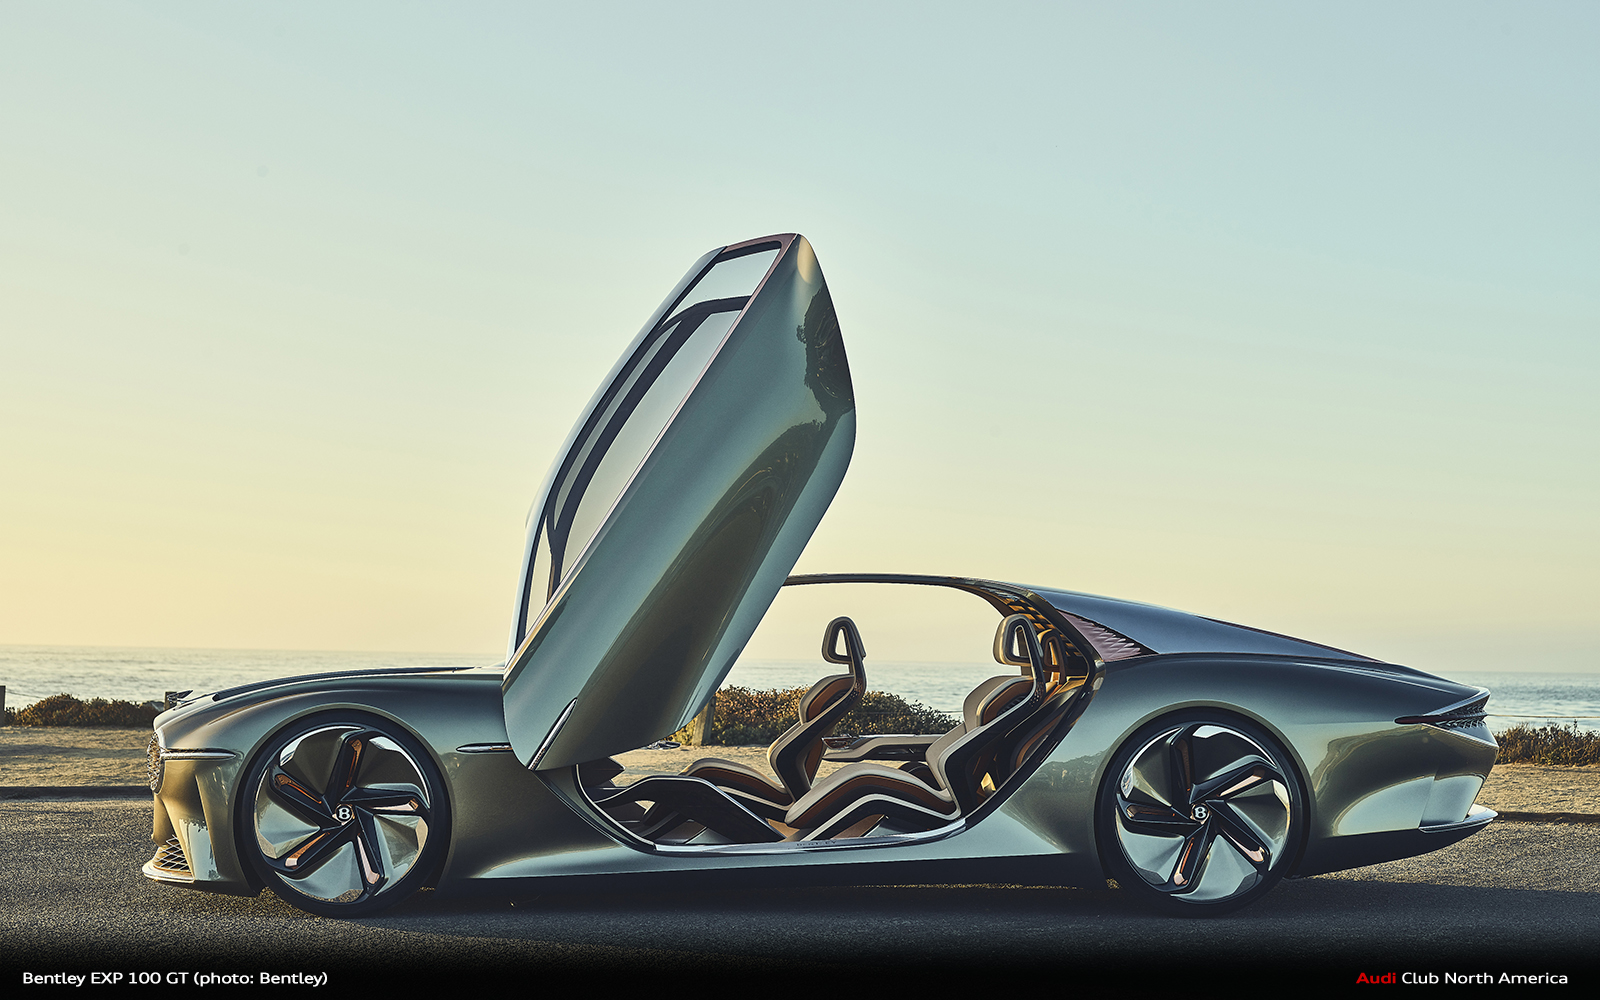 Bentley EXP 100 GT – Working In Partnership For A Future Of Sustainable Luxury Mobility